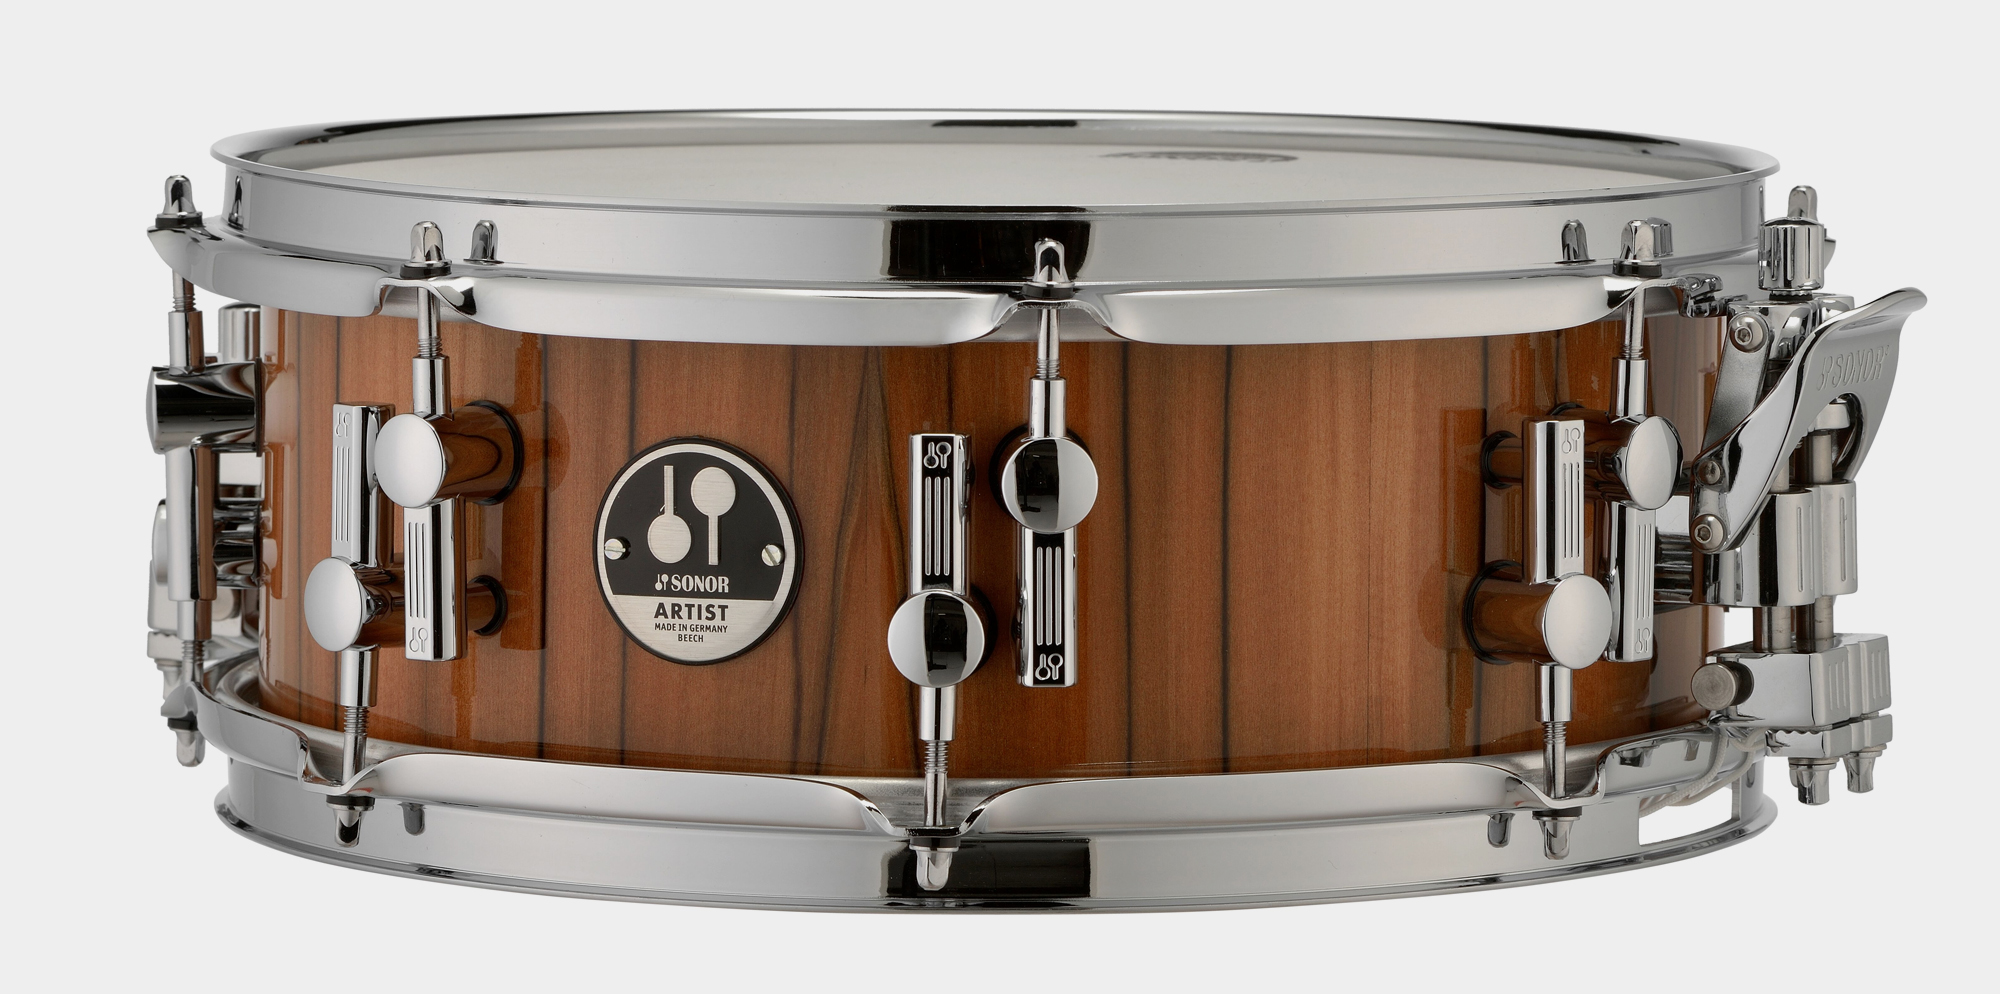 Sonor Artist Snare AS 16 1305 TI SDW